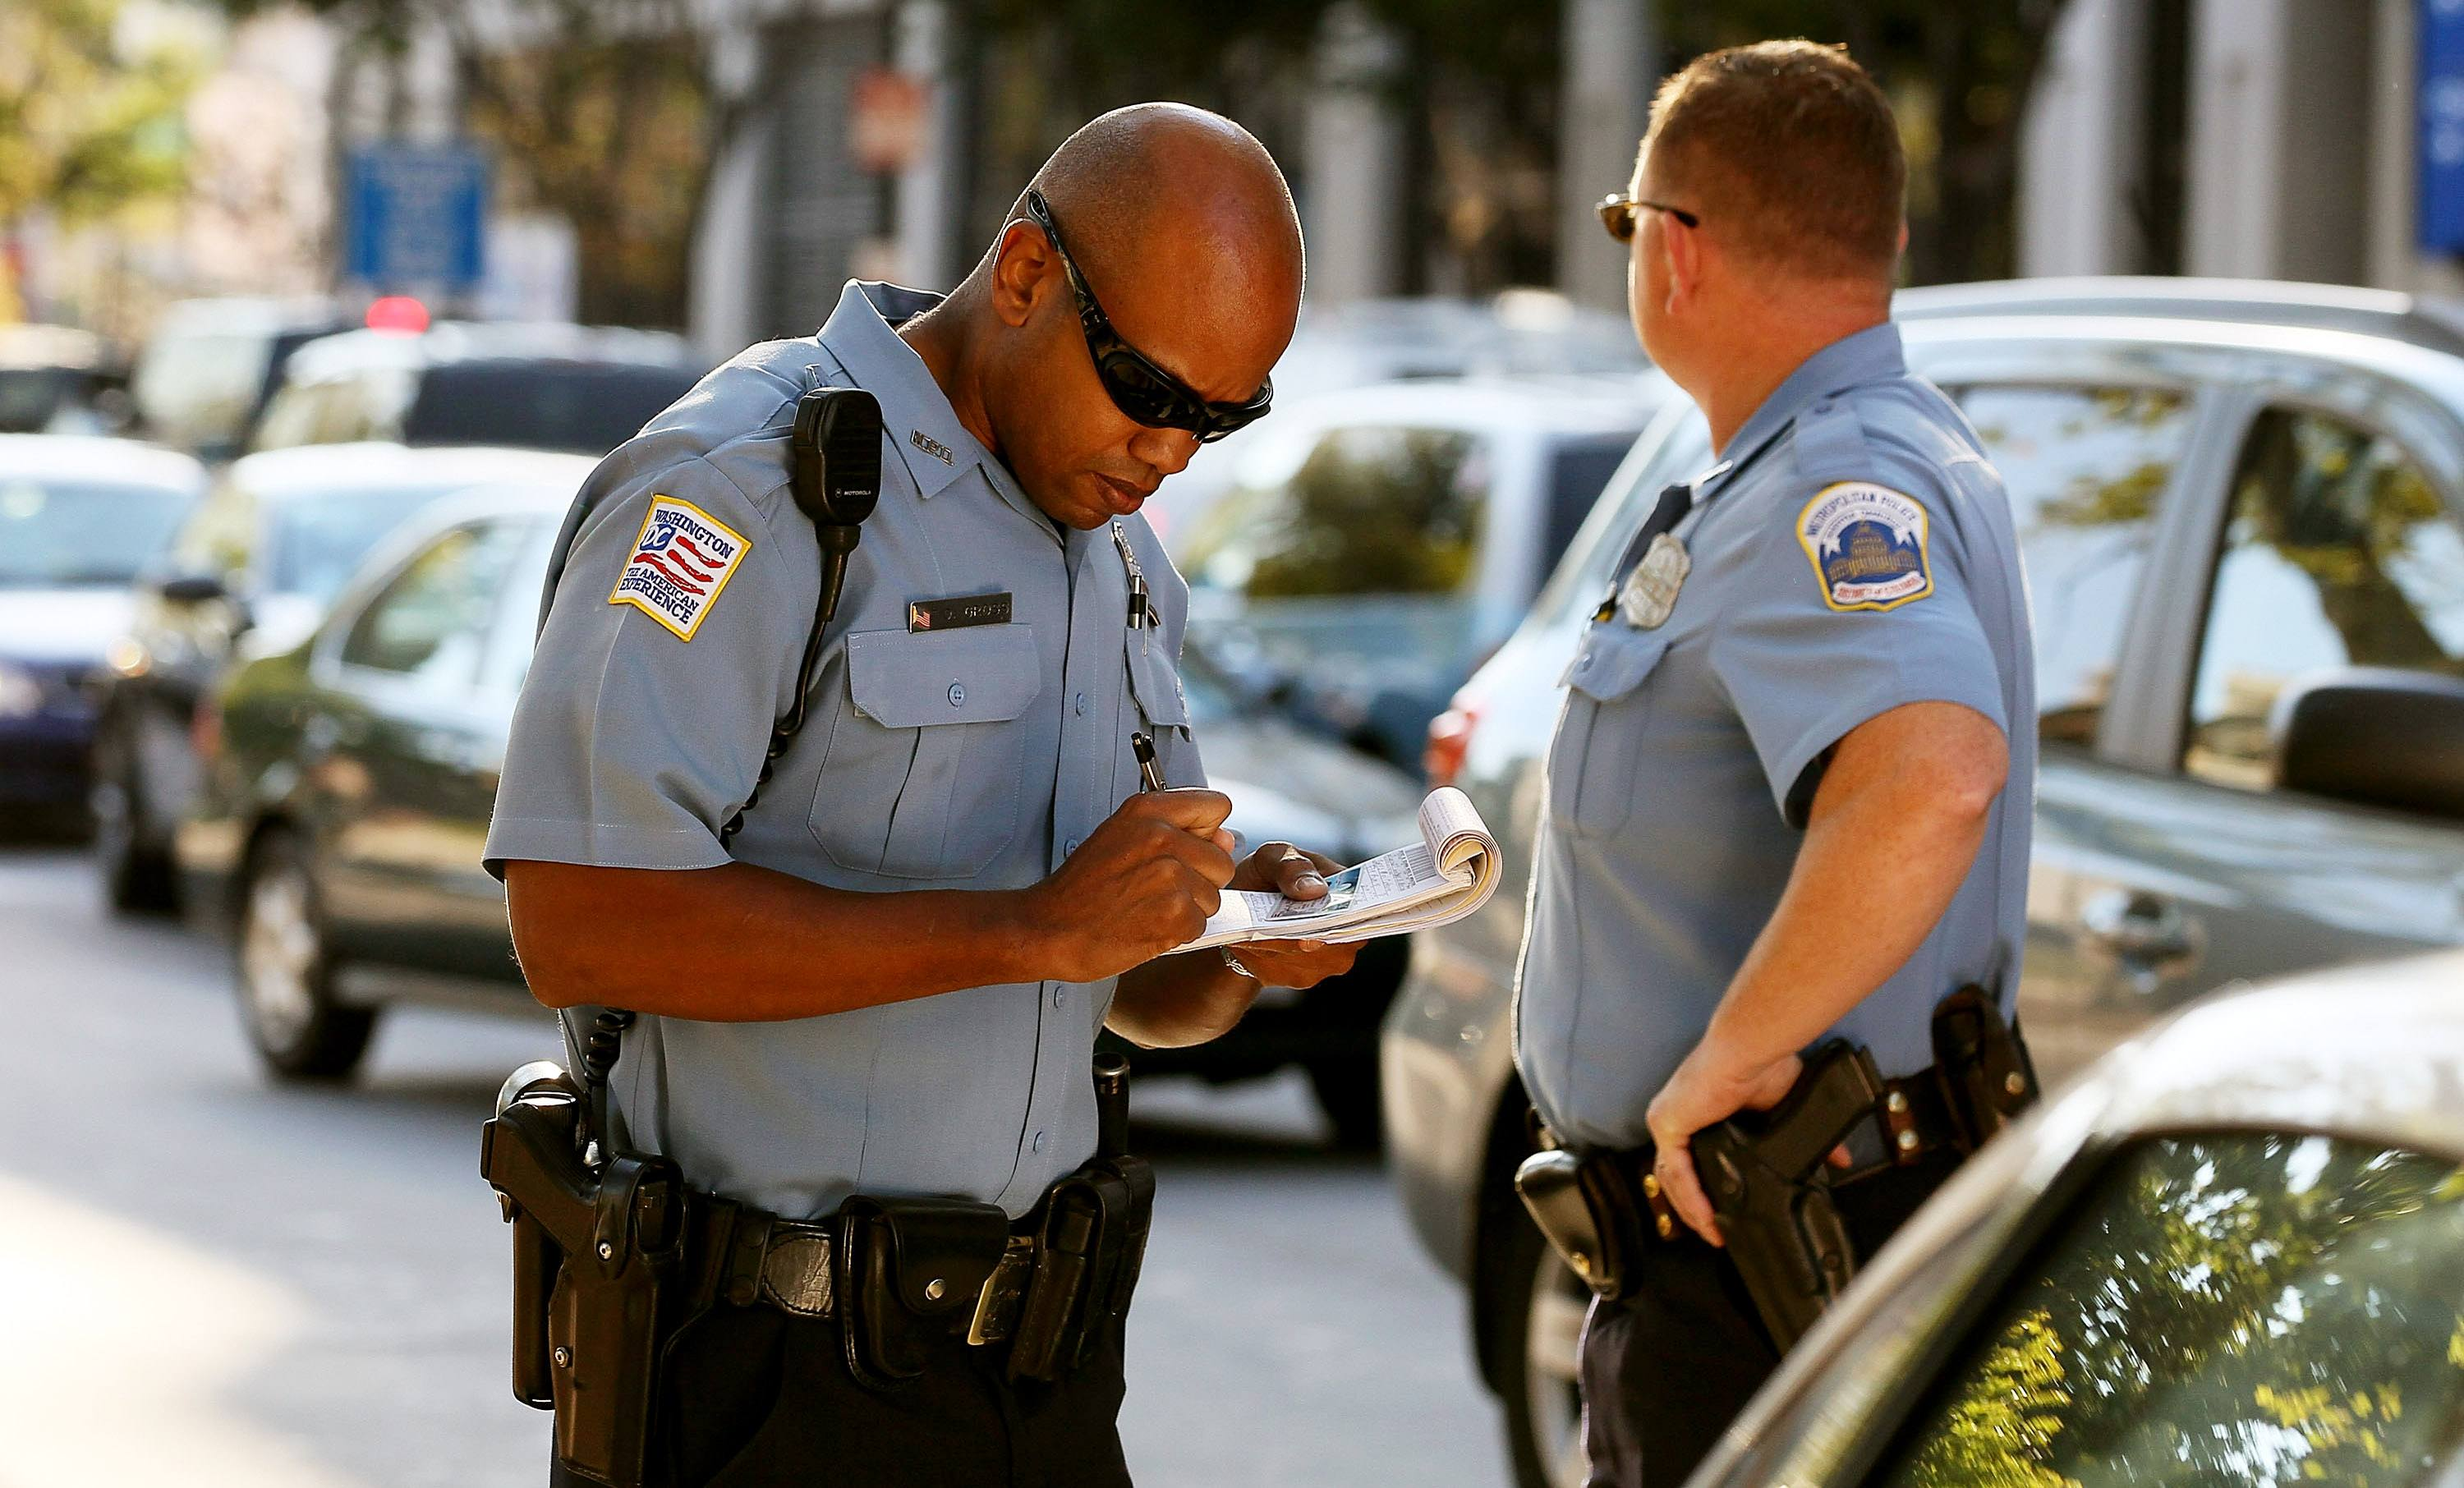 D.C. cops write a traffic ticket